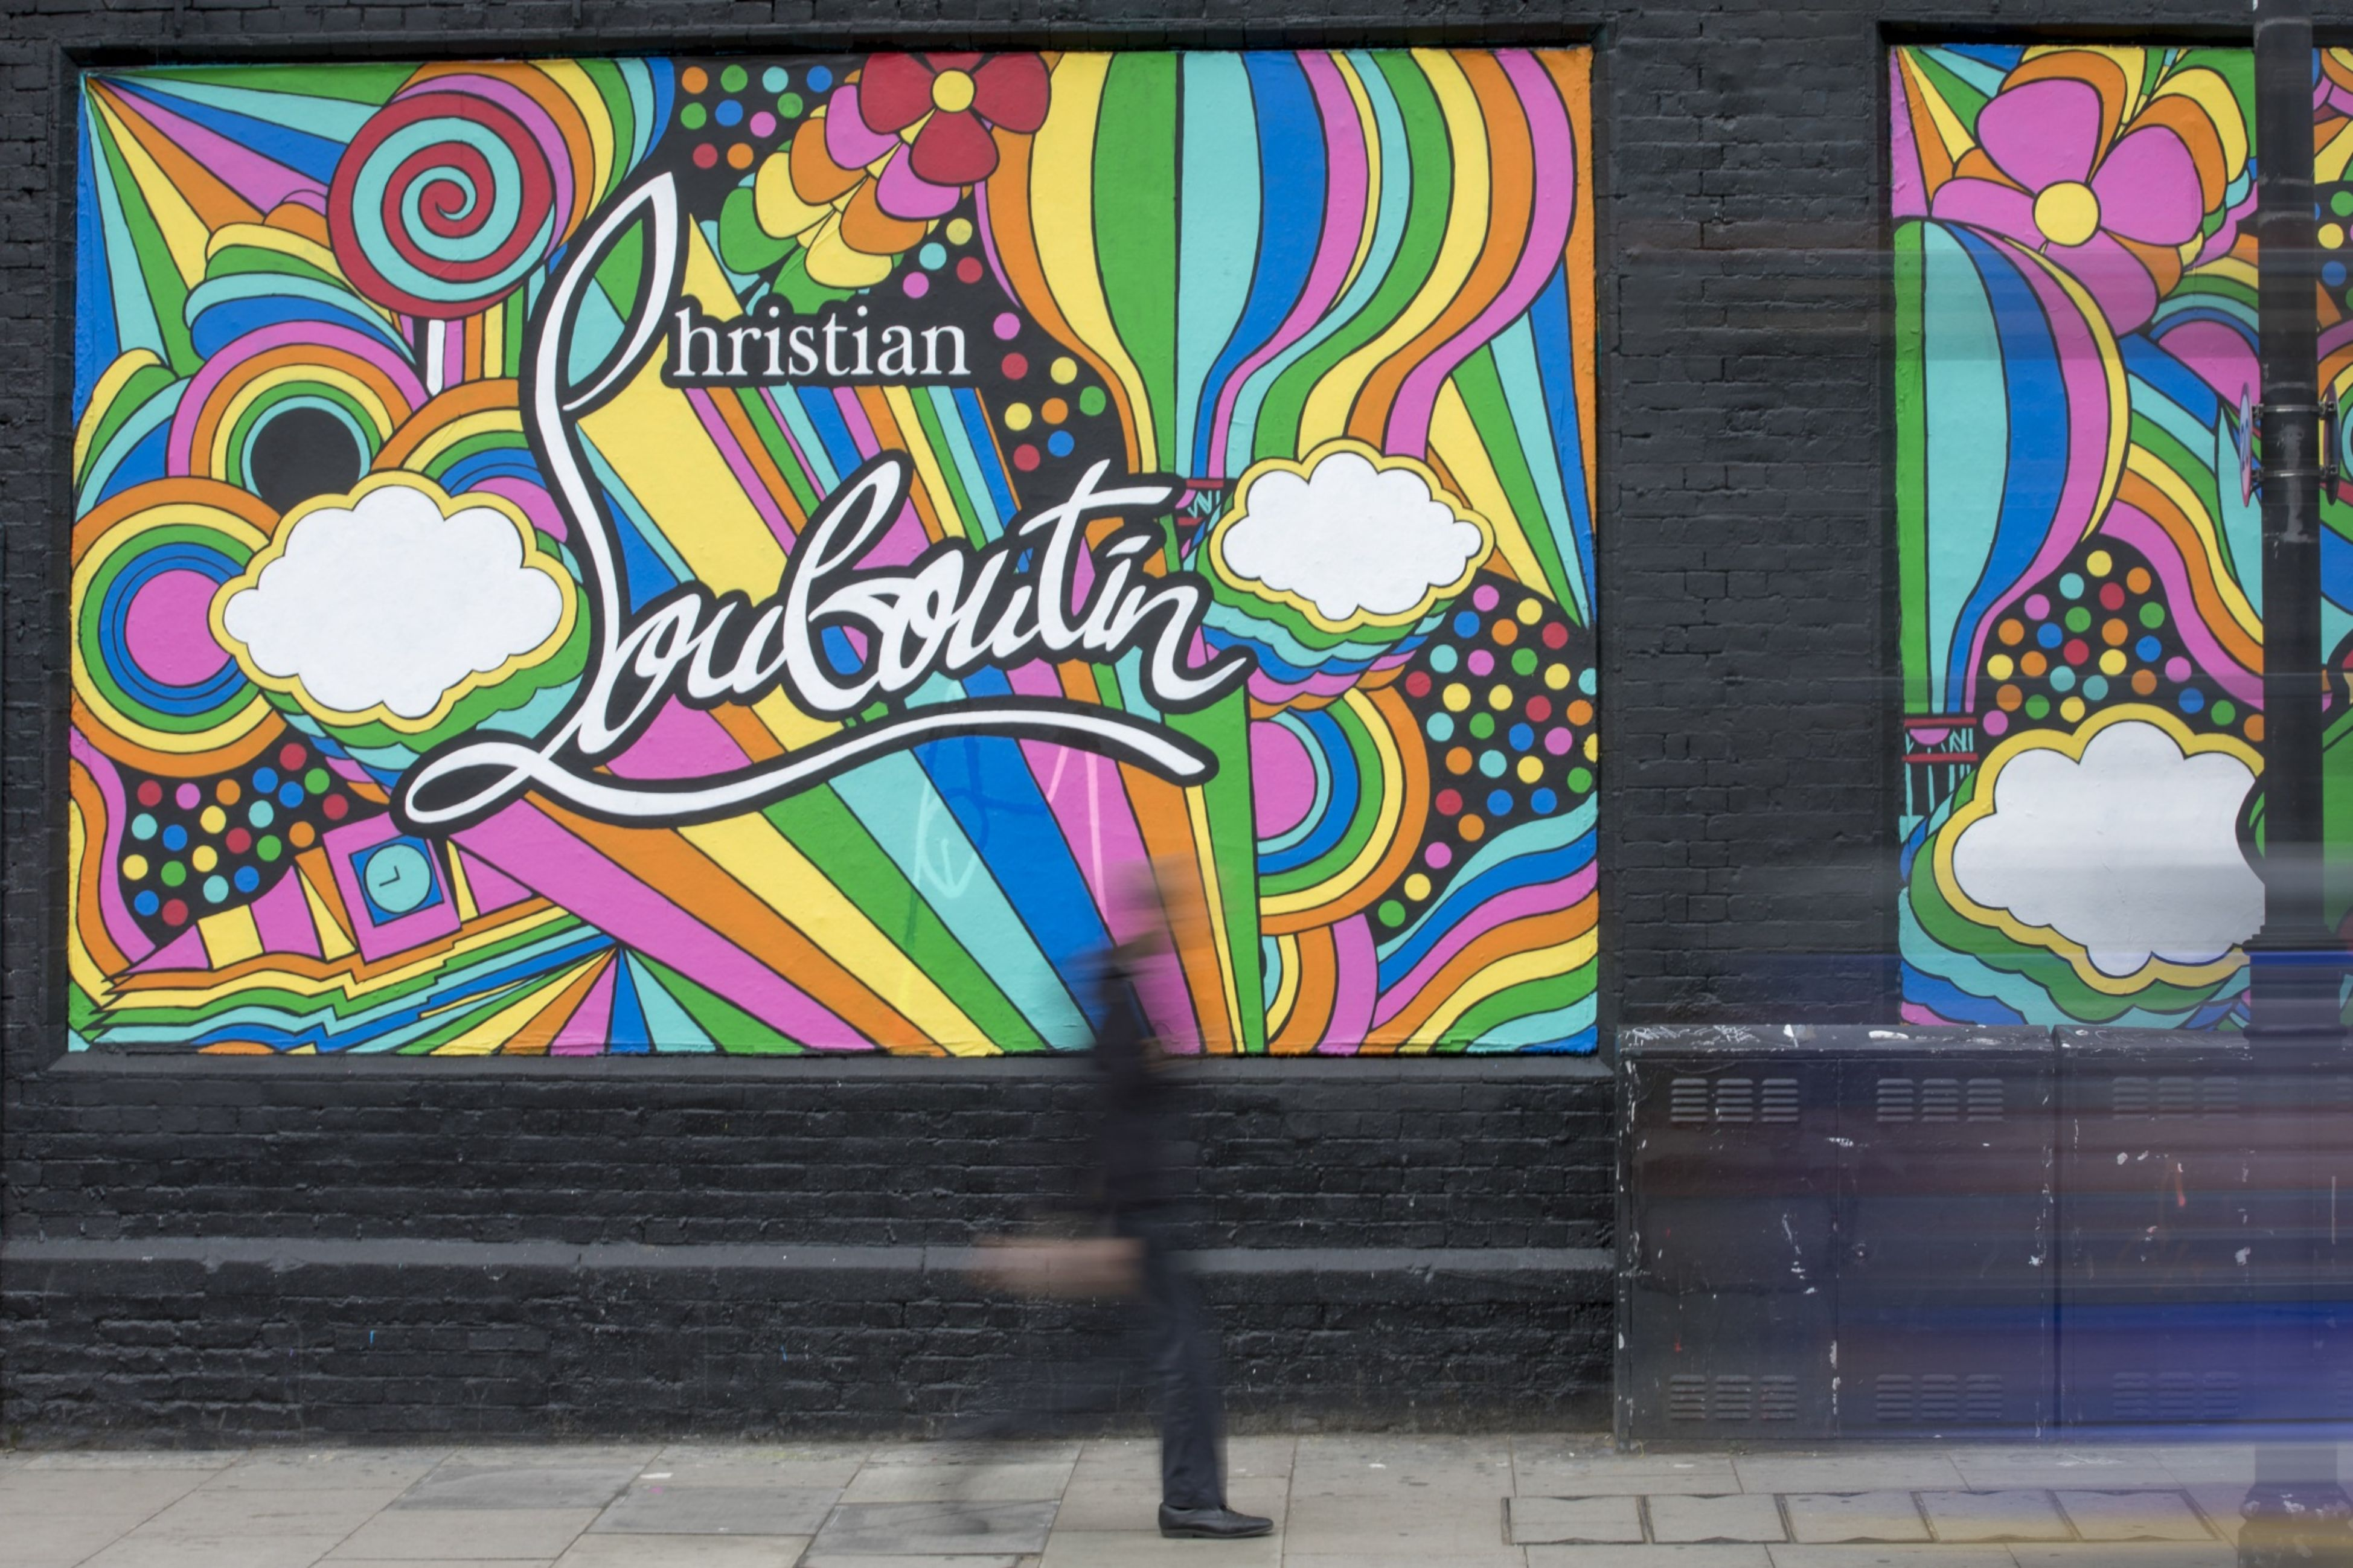 A mural Christian Louboutin stands on display on Great Eastern Street, East London, U.K.